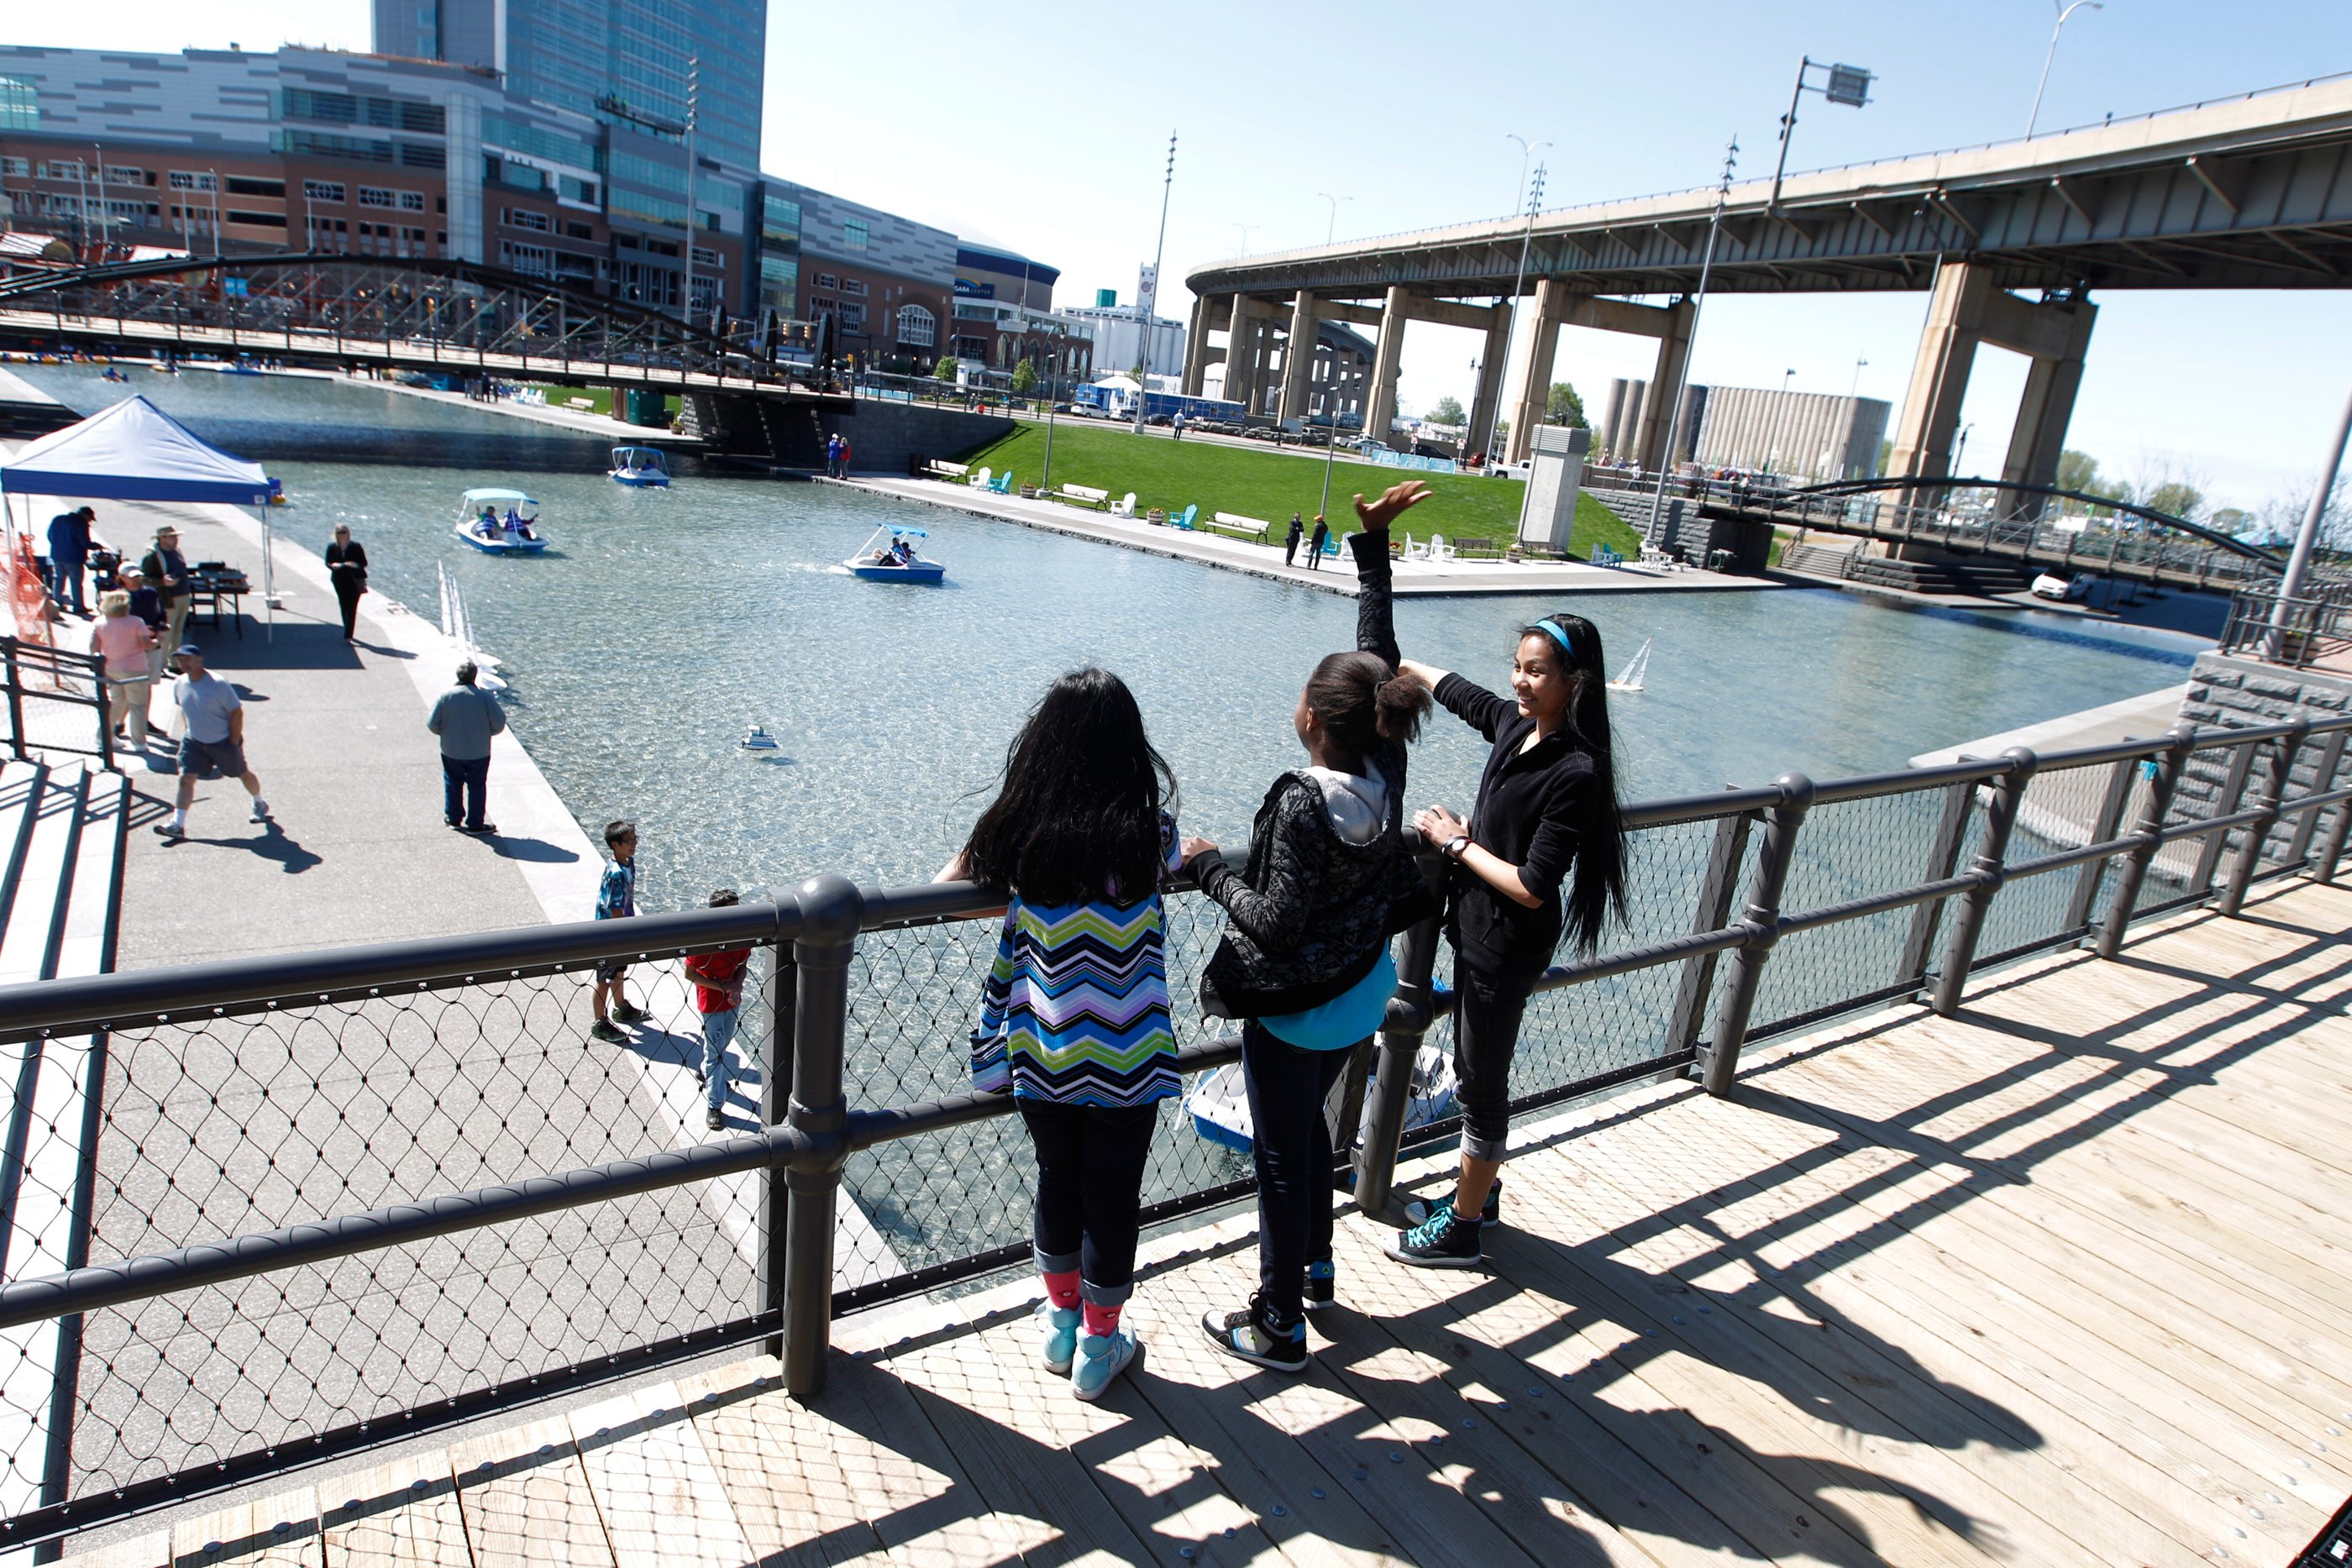 Canalside is only one of the parts of Buffalo where NCAA visitors will see noticeable changes. (John Hickey/News file photo)